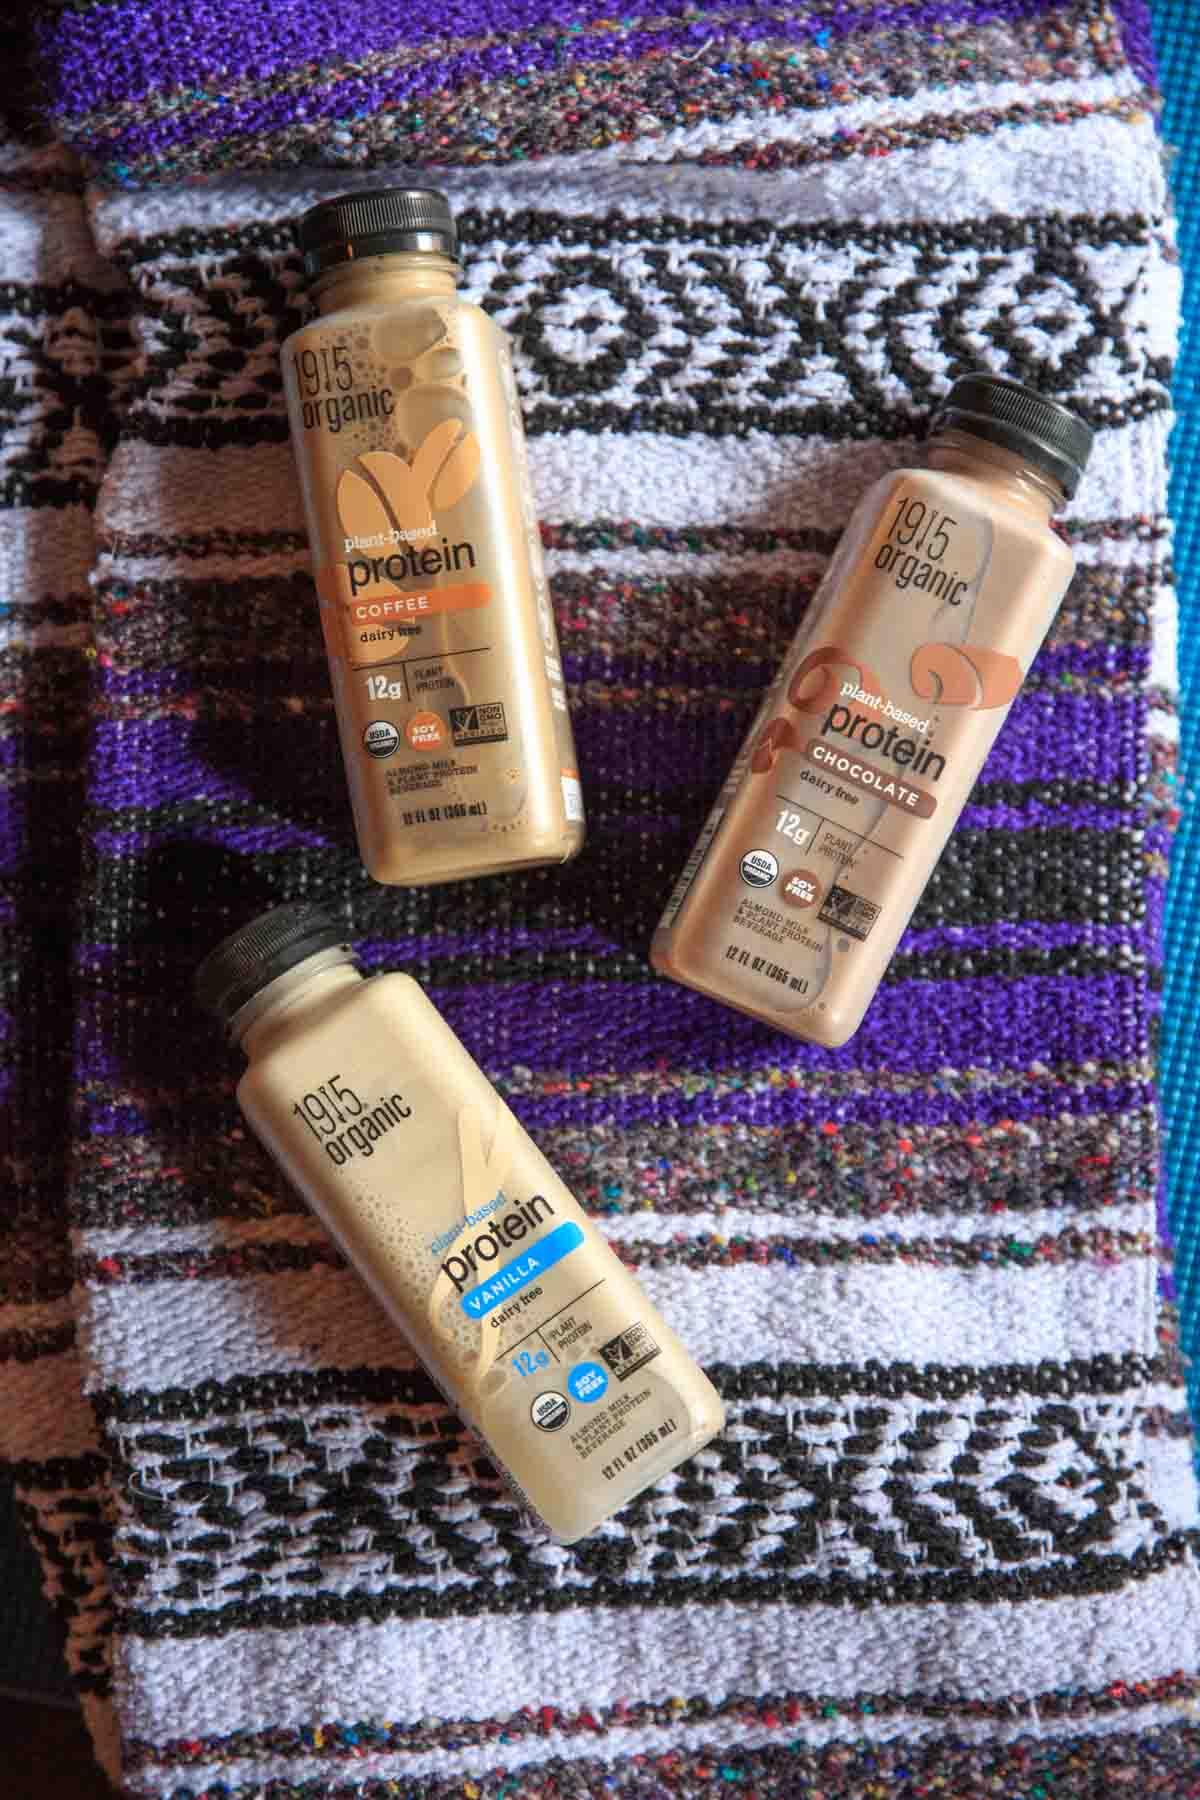 1915 Organic Protein Drink - Chocolate, Vanilla and Coffee on yoga mat and blanket